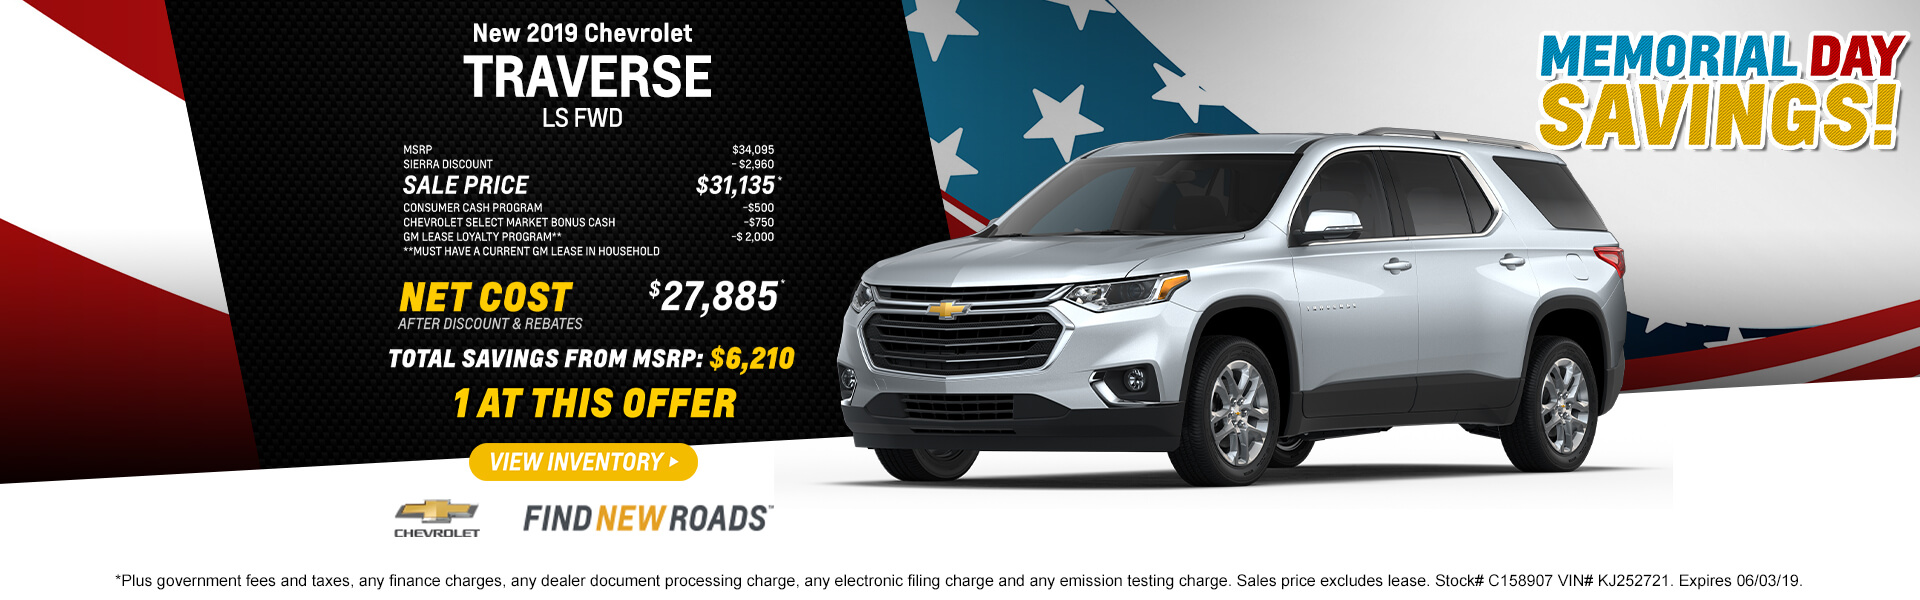 2019 CHEVROLET TRAVERSE LS FWD   MSRP $34,095 SIERRA DISCOUNT - $2,960 SALE PRICE $31,135* CONSUMER CASH PROGRAM -$500 CHEVROLET SELECT MARKET BONUS CASH -$750 GM LEASE LOYALTY PROGRAM** -$ 2,000 **Must have a current GM lease in household  NET COST AFTER DISCOUNT AND REBATES $27,885*  1 at this offer  *Plus government fees and taxes, any finance charges, any dealer document processing charge, any electronic filing charge and any emission testing charge. Sales price excludes lease. Stock# C158907 VIN# KJ252721. Expires 06/03/19.